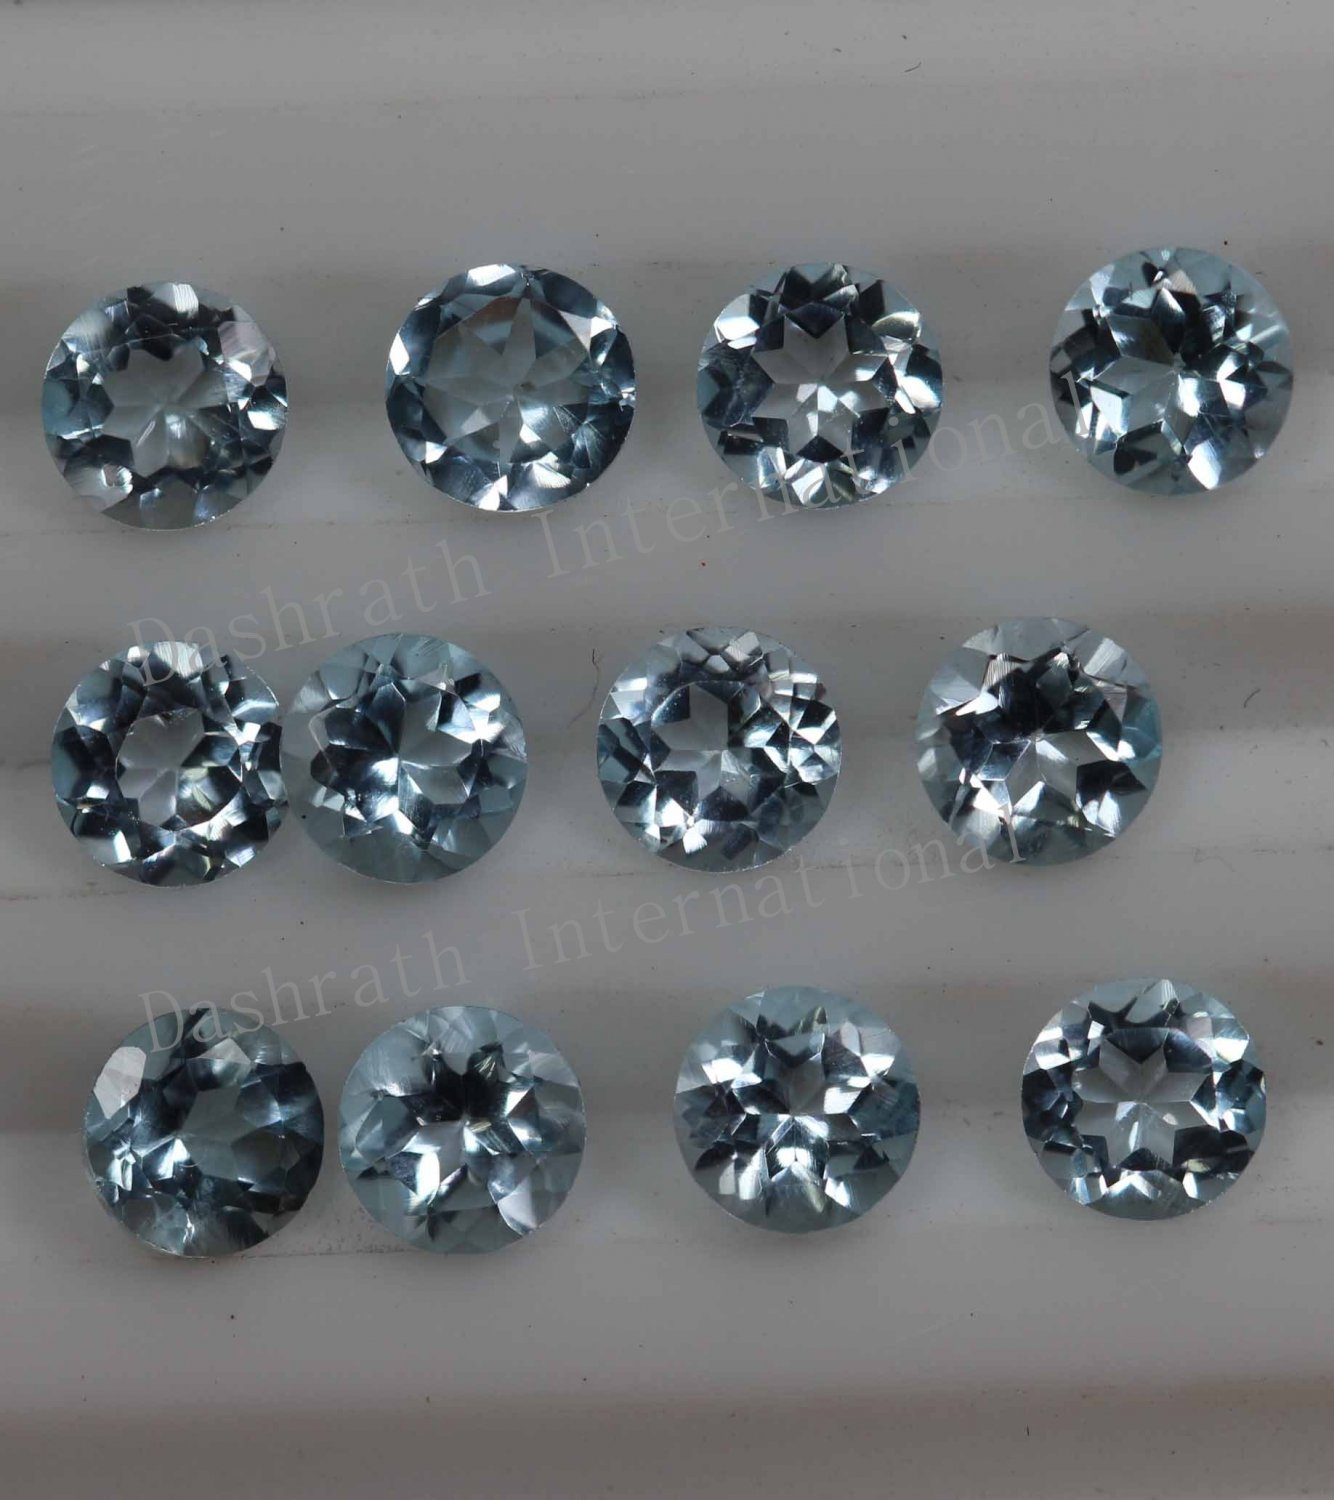 4mmNatural Sky Blue Topaz Faceted Cut Round 10 Pieces Lot Blue Color  Top Quality Loose Gemstone